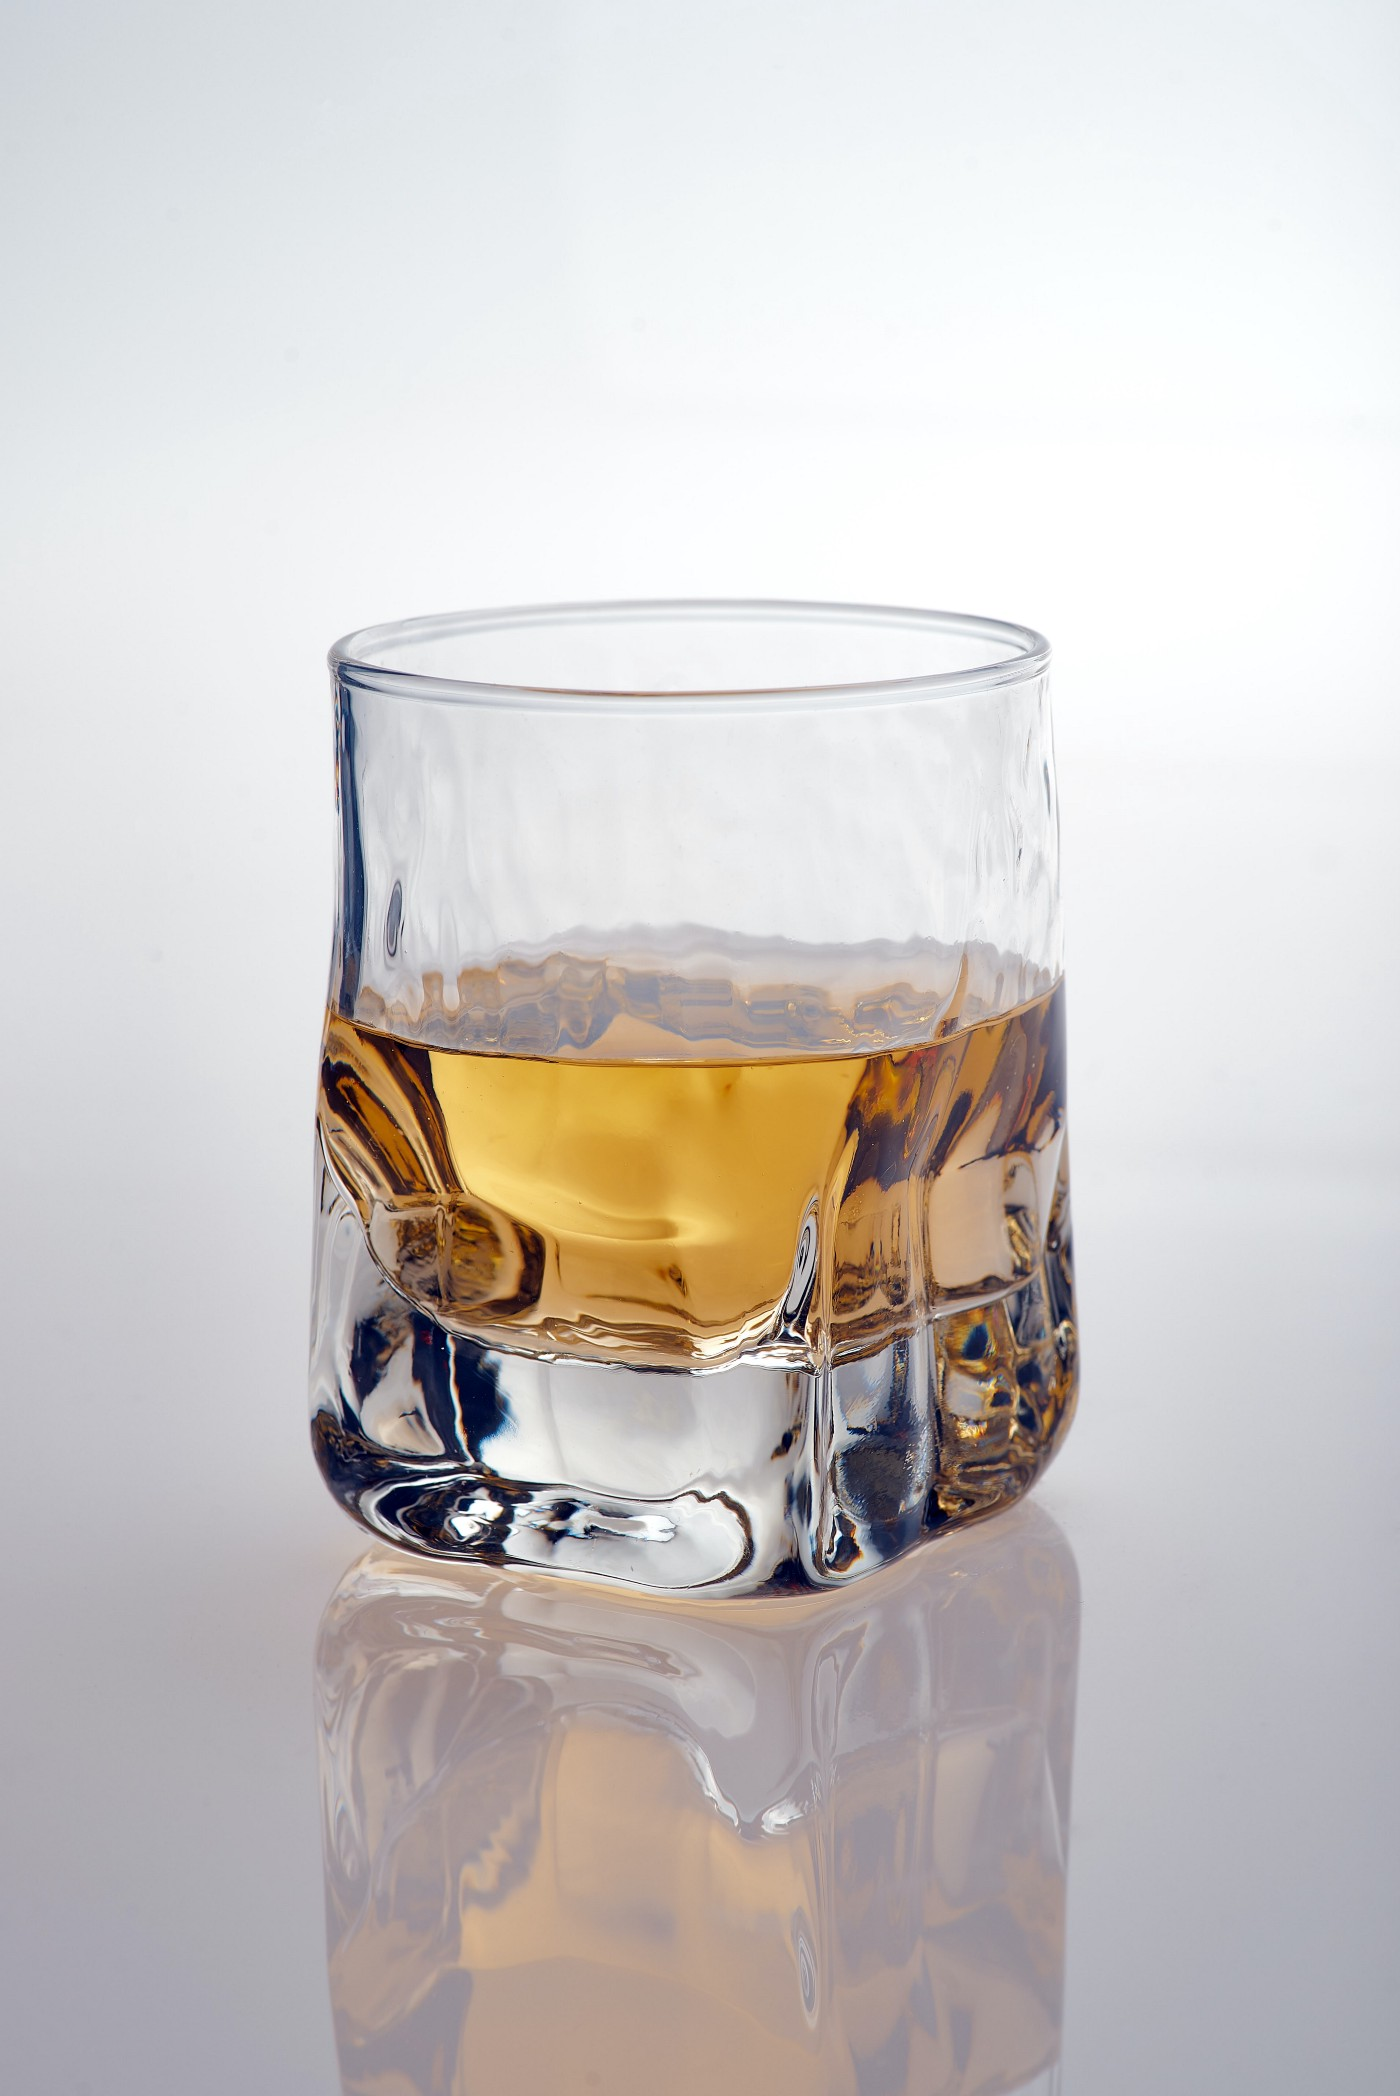 A half-filled square-shaped glass of whisky